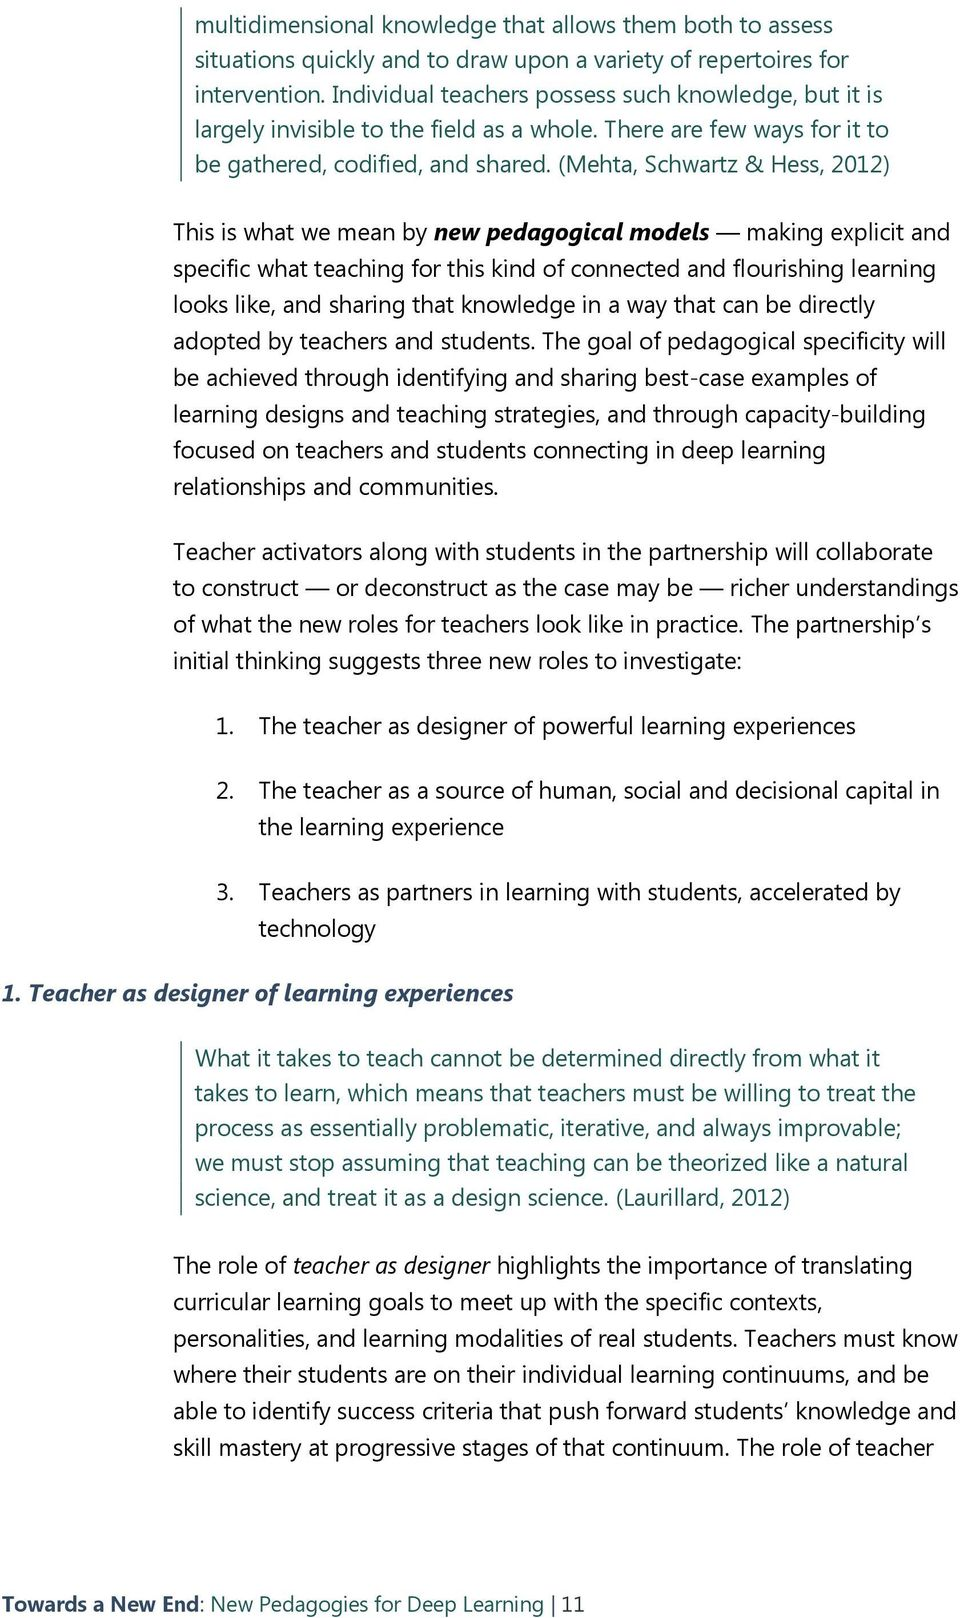 (Mehta, Schwartz & Hess, 2012) This is what we mean by new pedagogical models making explicit and specific what teaching for this kind of connected and flourishing learning looks like, and sharing